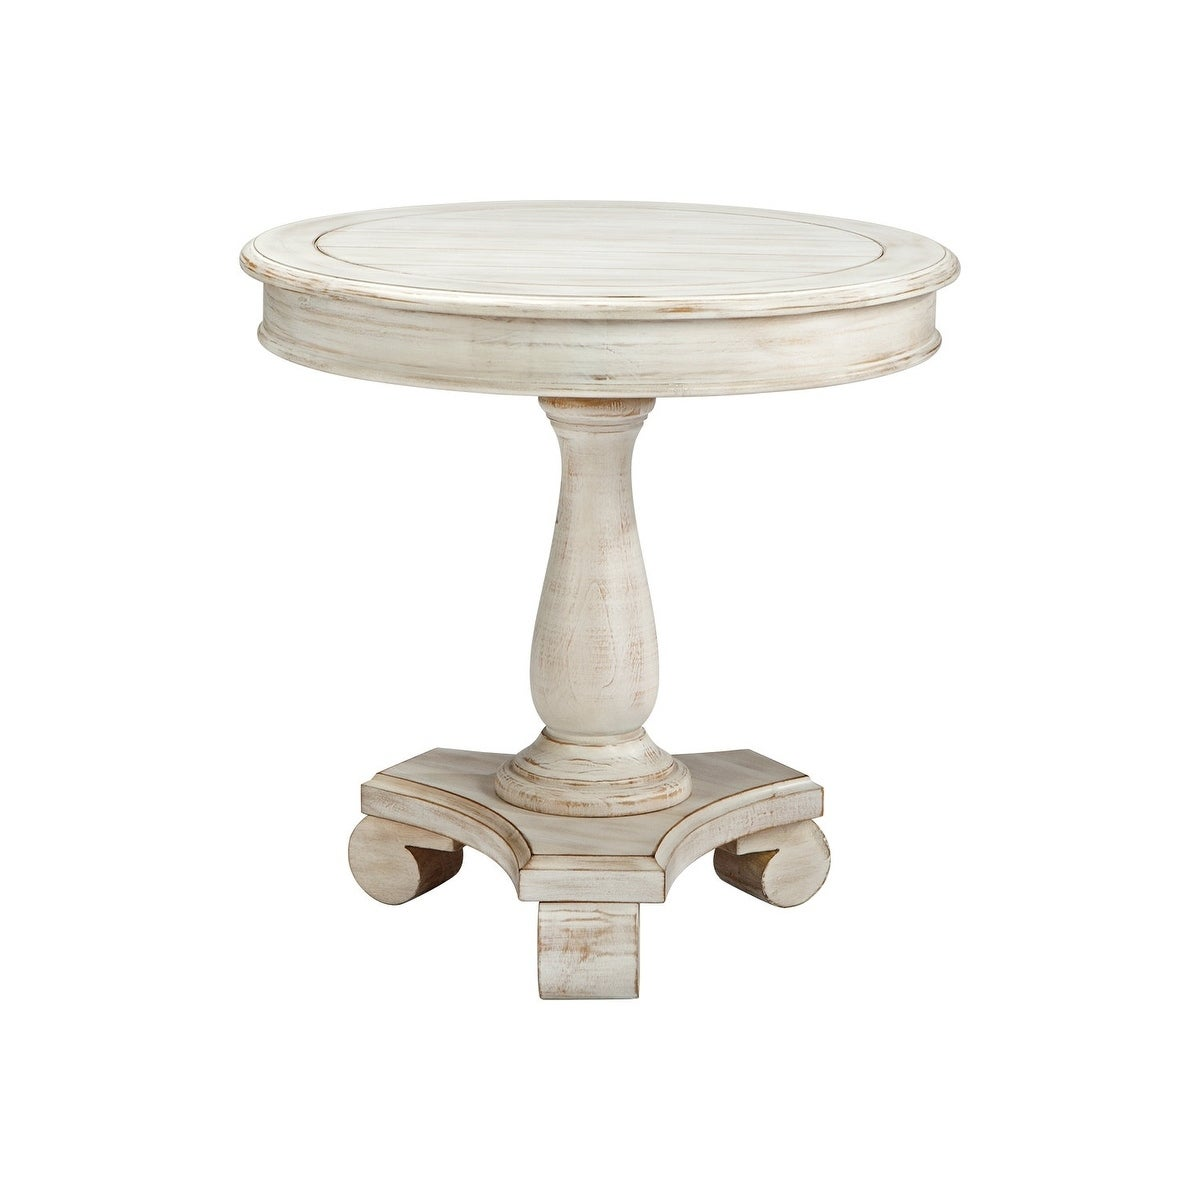 Ordinaire Shop Signature Design By Ashley Mirimyn White Round Accent Table   Free  Shipping Today   Overstock.com   10735748